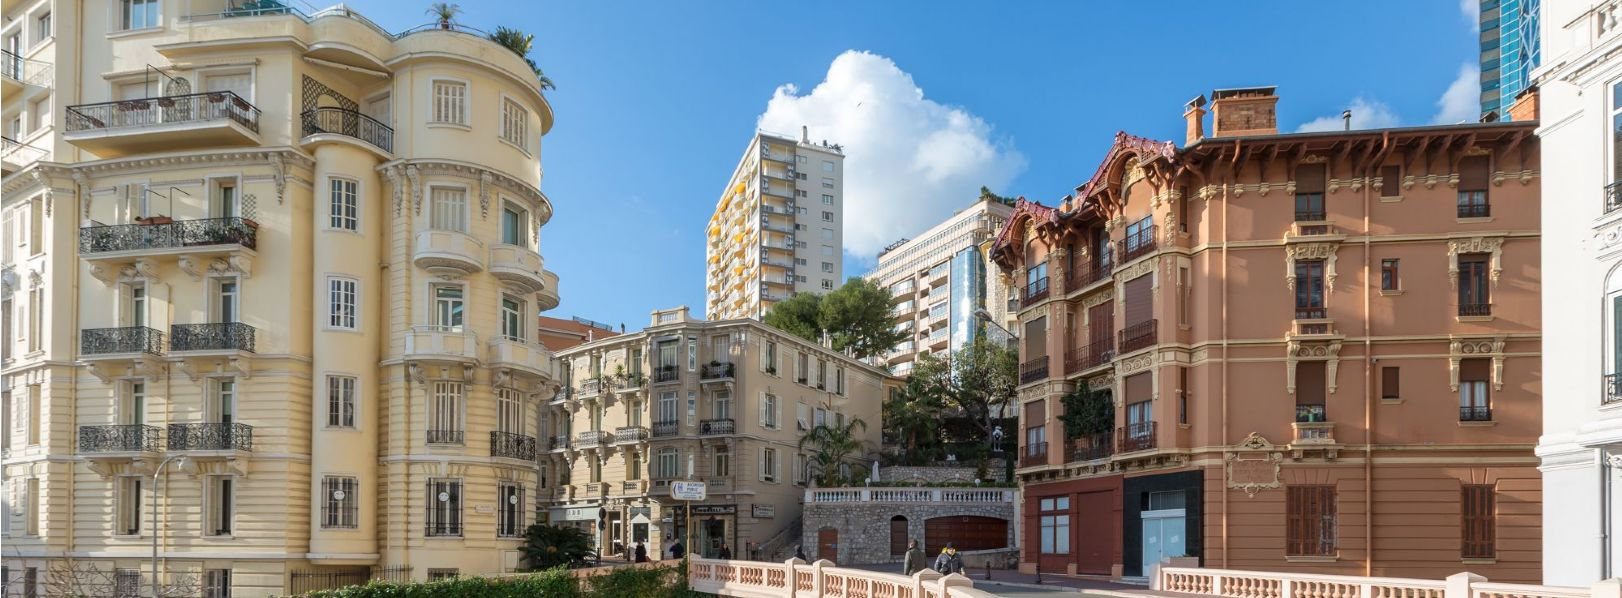 Monaco Real Estate Experts | Buying Property in Monaco | Savills - buildings in La Rousse